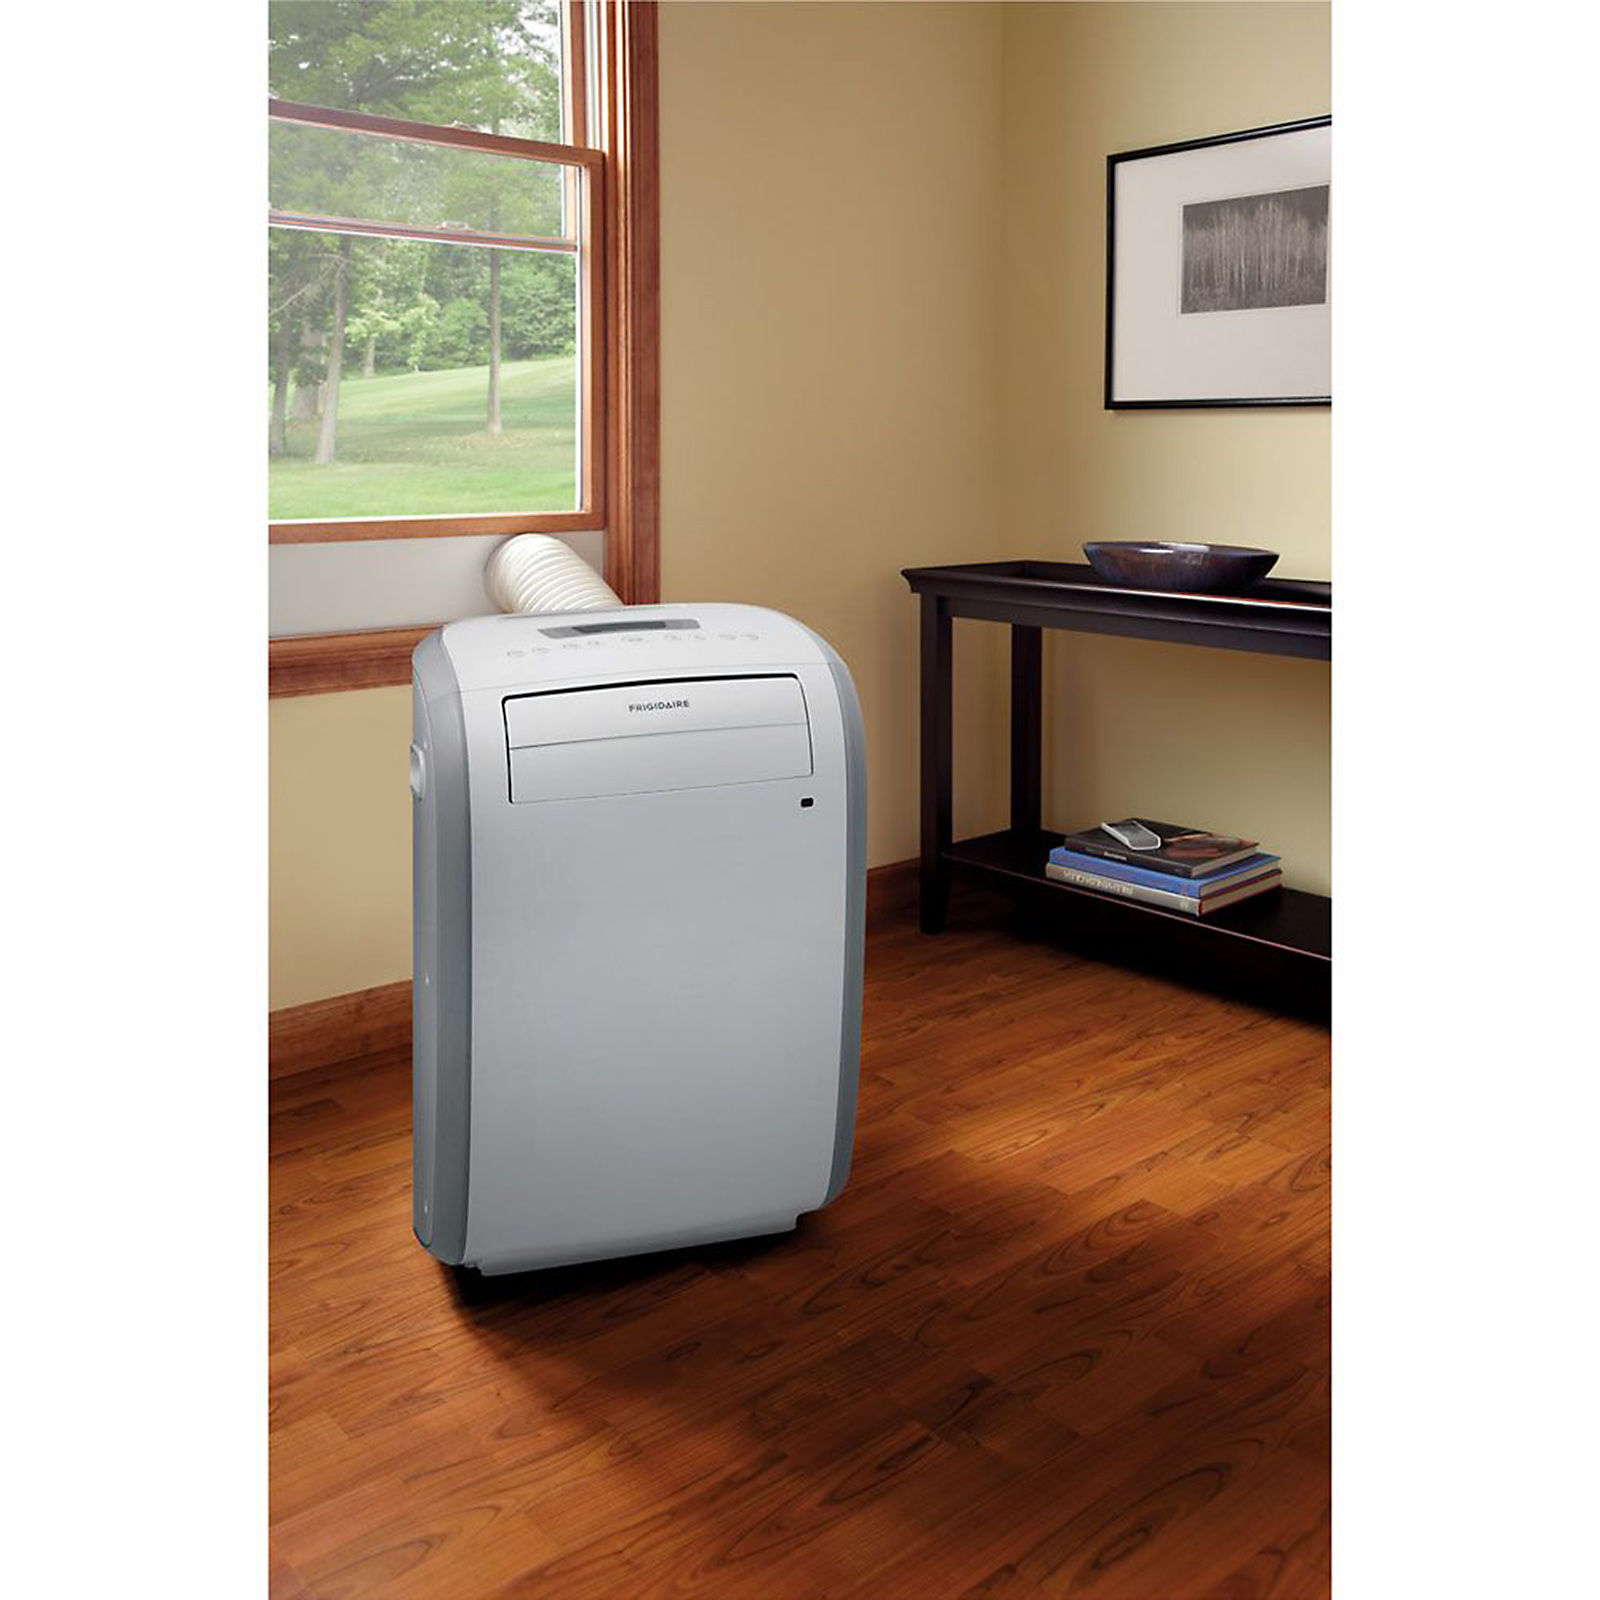 Frigidaire 7,000 BTU 115-Volt Portable Air Conditioner with Full-Function Remote Control